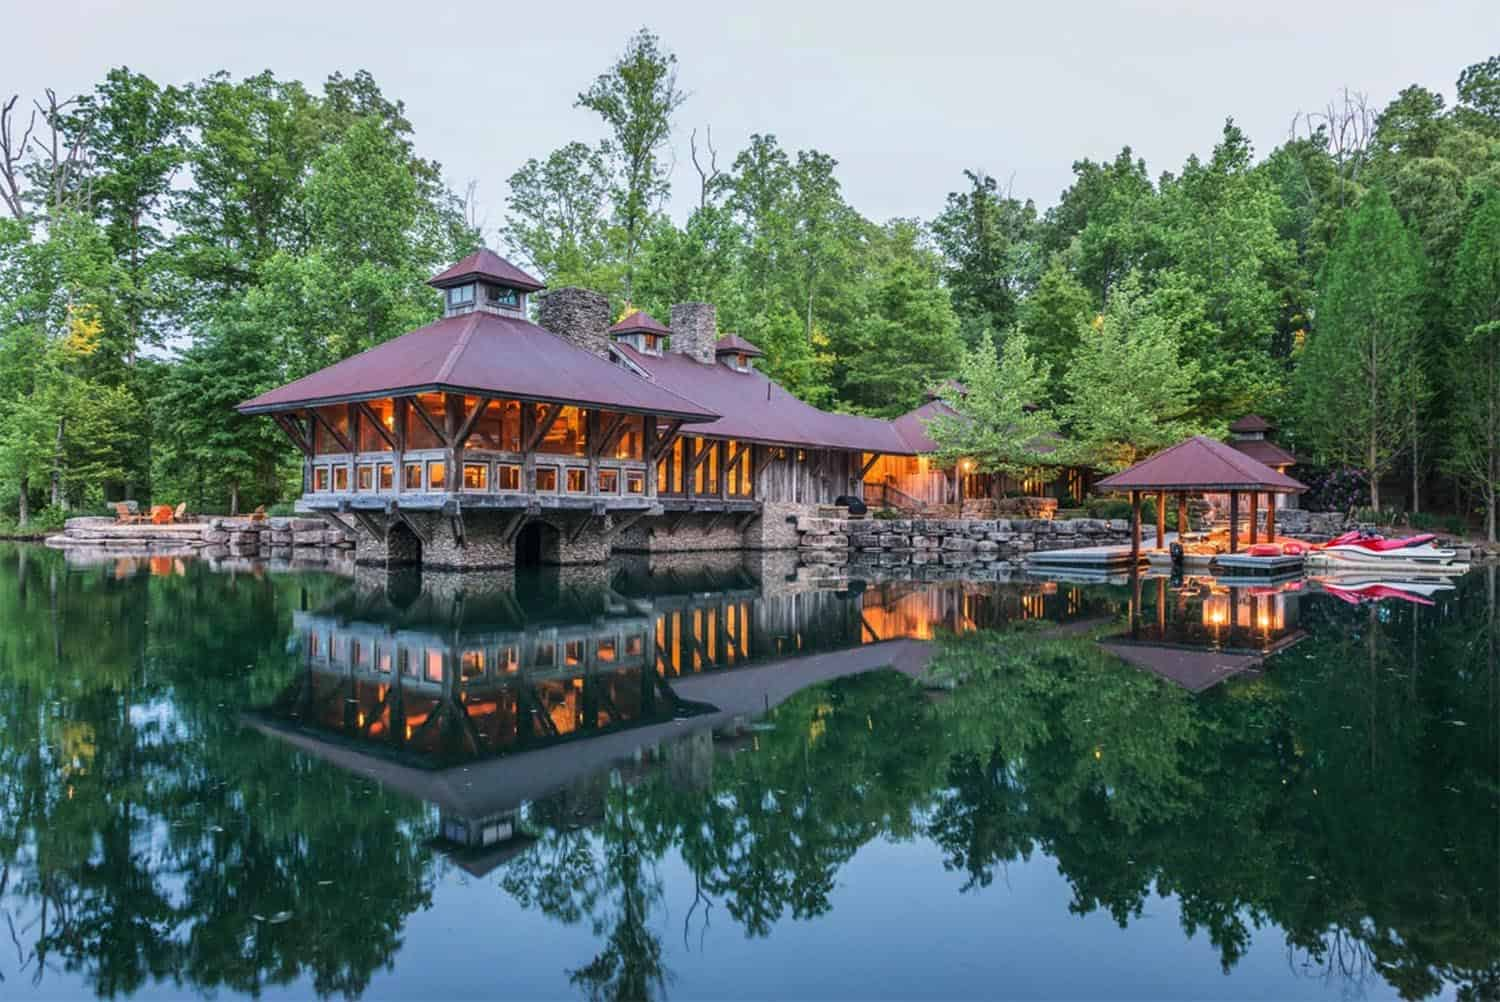 This gorgeous rustic sanctuary in Tennessee appears to float on water